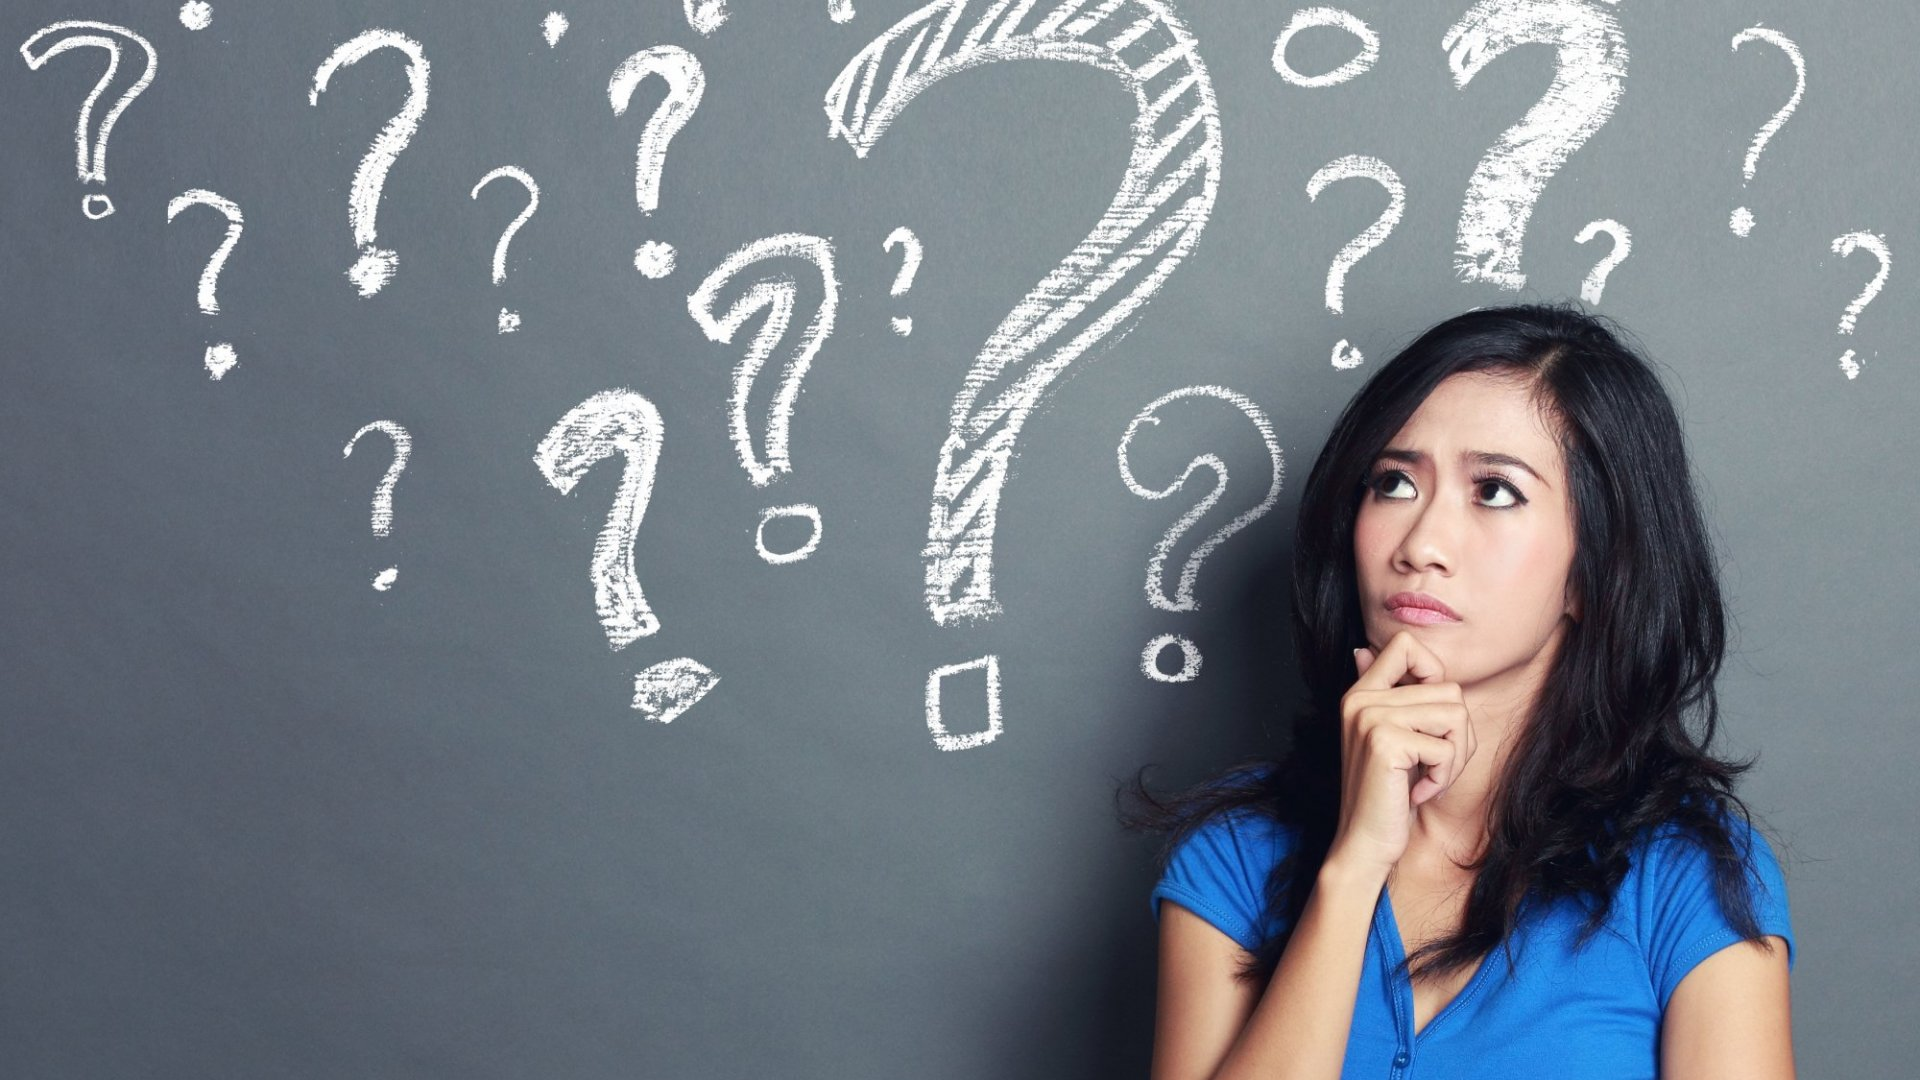 How Many Questions Can You Ask in a Job Interview?